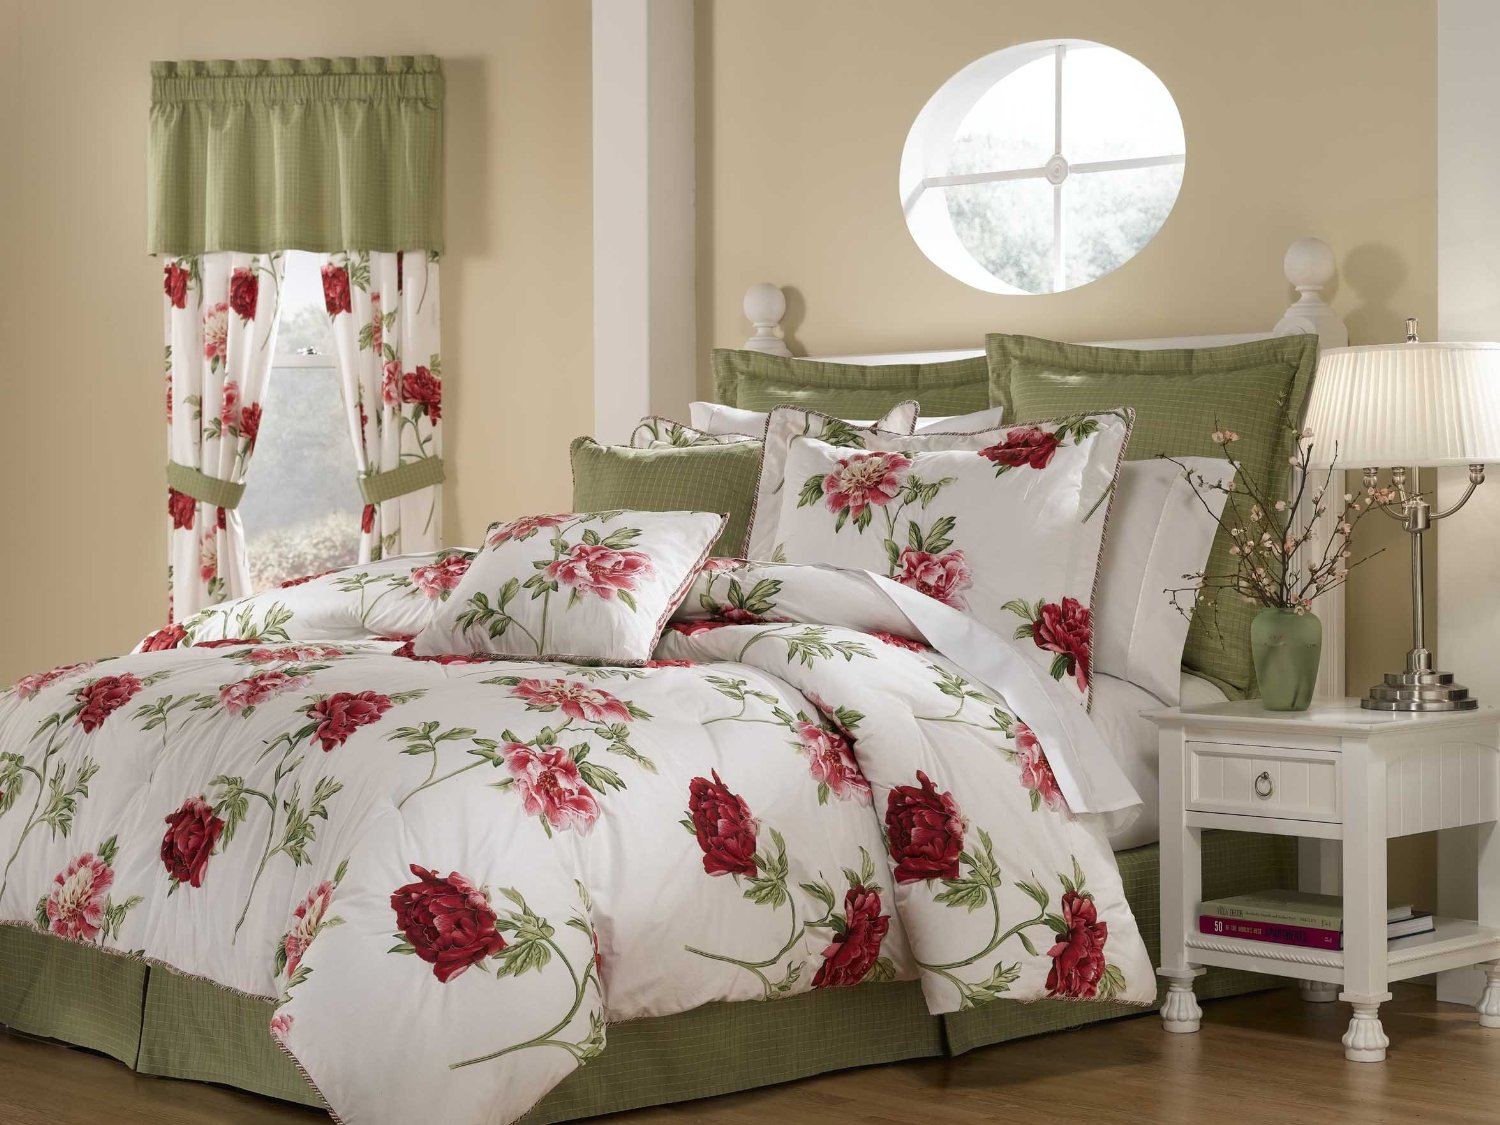 admirable bedroom furniture sets from cynthia rowley home